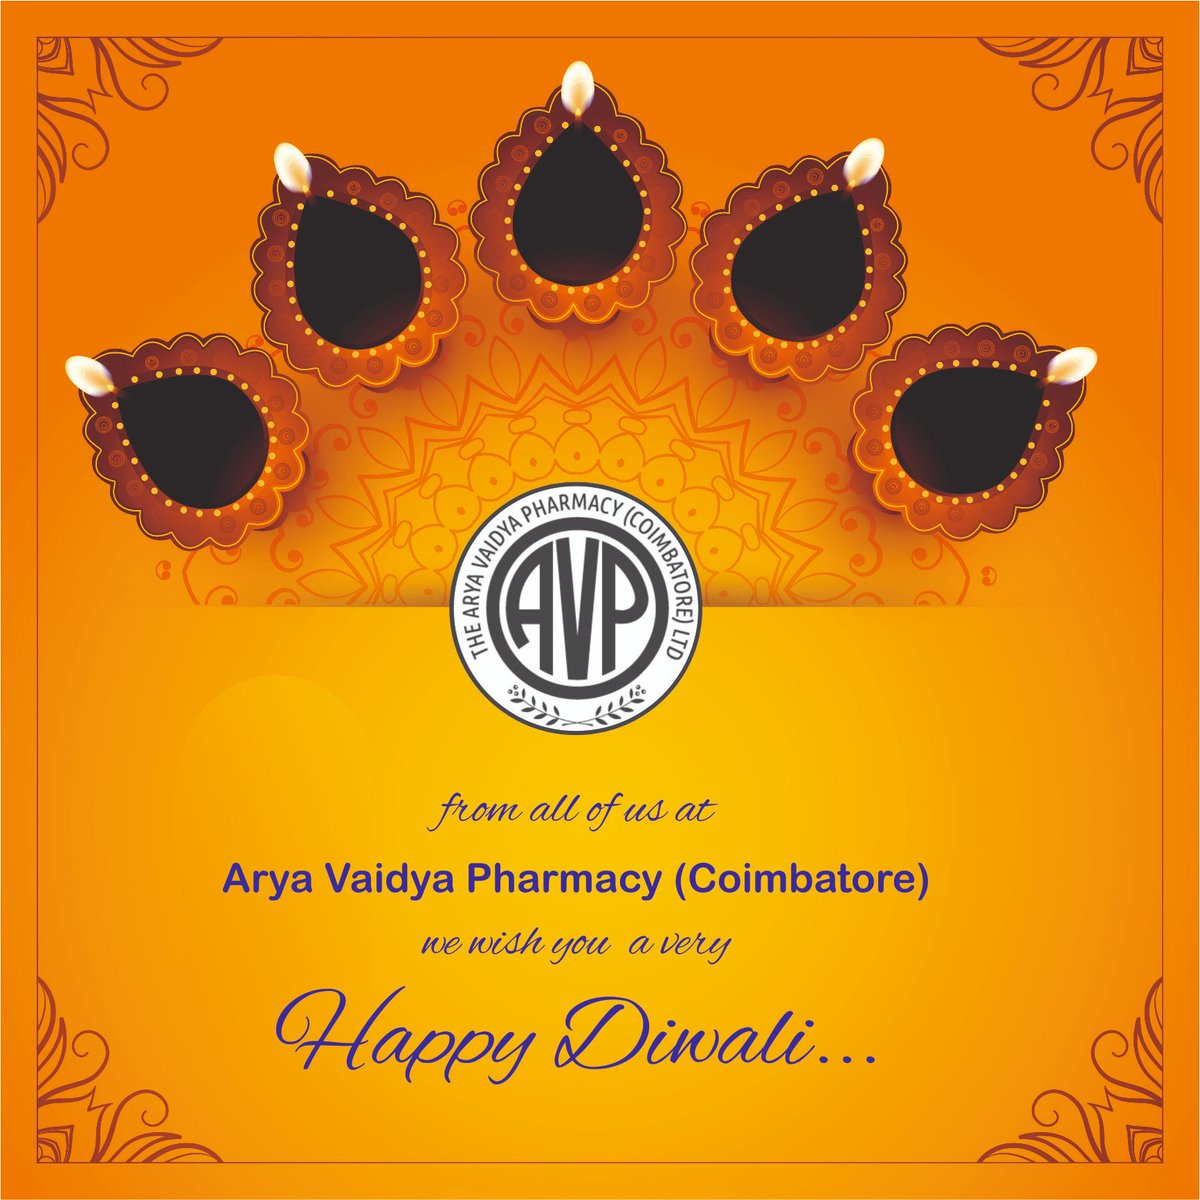 Wishing you all a very Happy Diwali! #avpfestivities #avpforhealth #avpayurveda #HappyDiwali2019